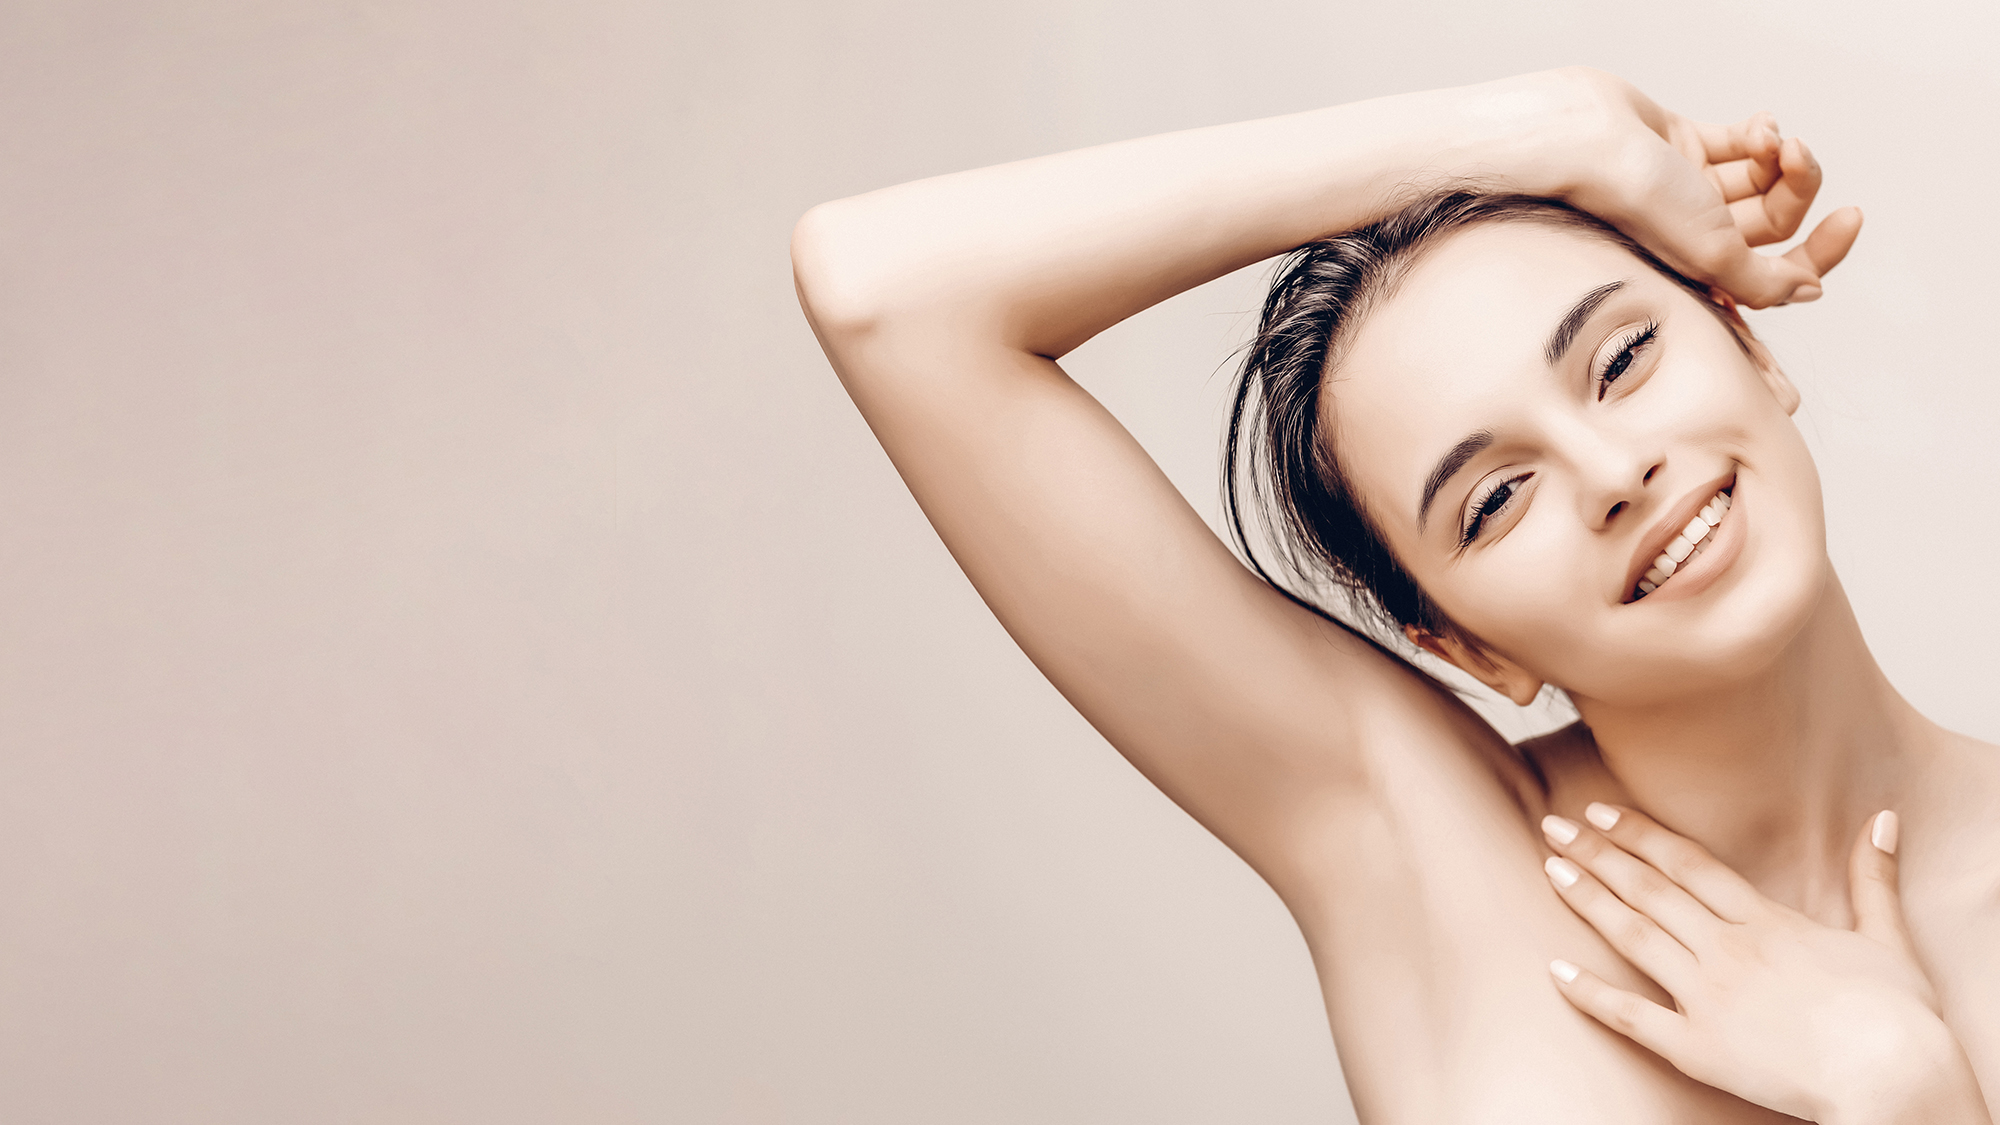 Natural beauty portrait of female face and body with silky smooth, hair-free skin.